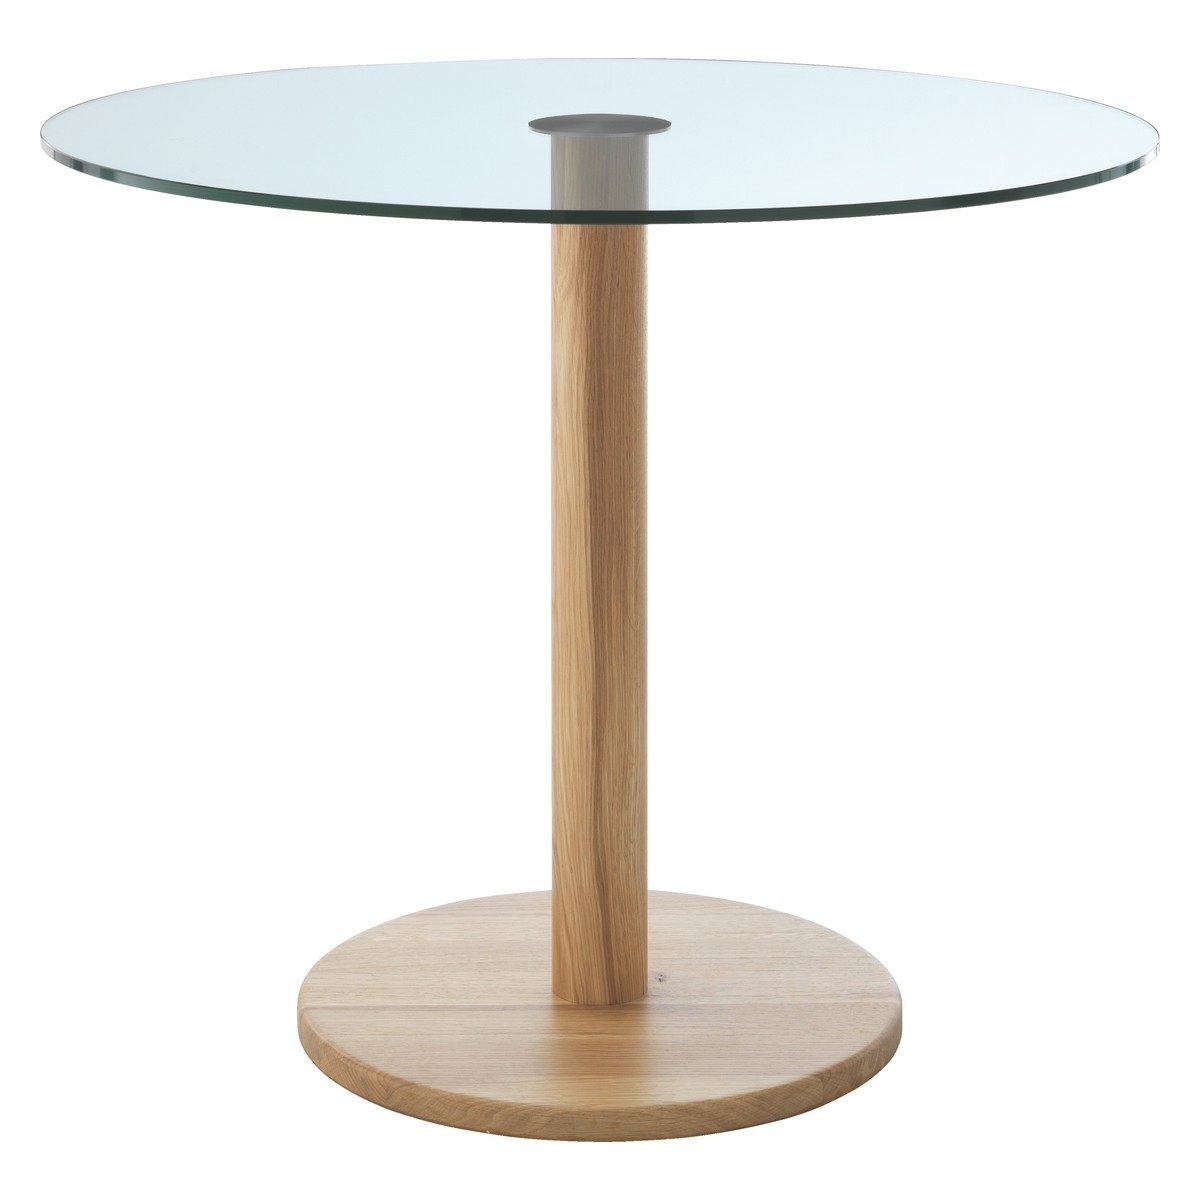 Buy Now At Habitat Uk With Latest Round Glass And Oak Dining Tables (View 11 of 25)